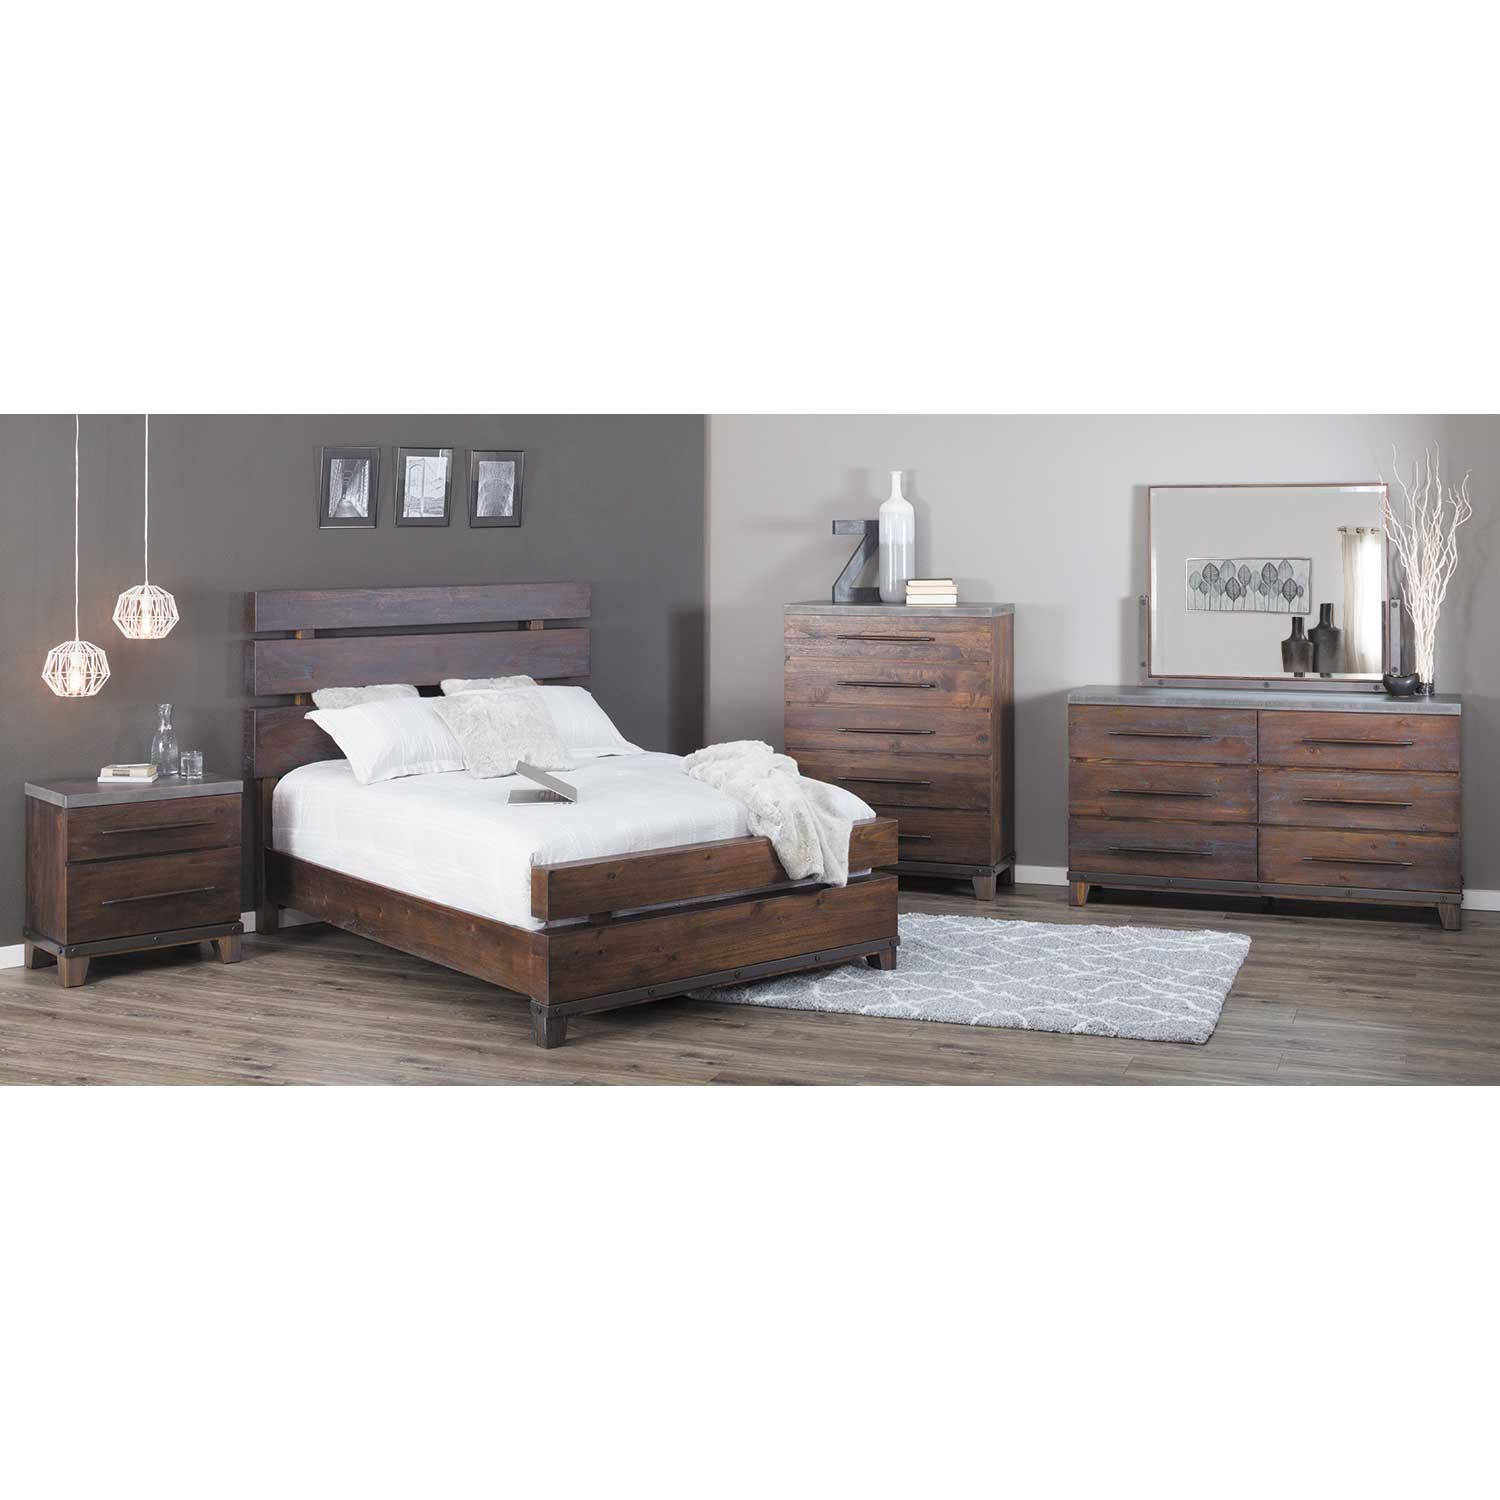 Picture of Forge King Panel Bed